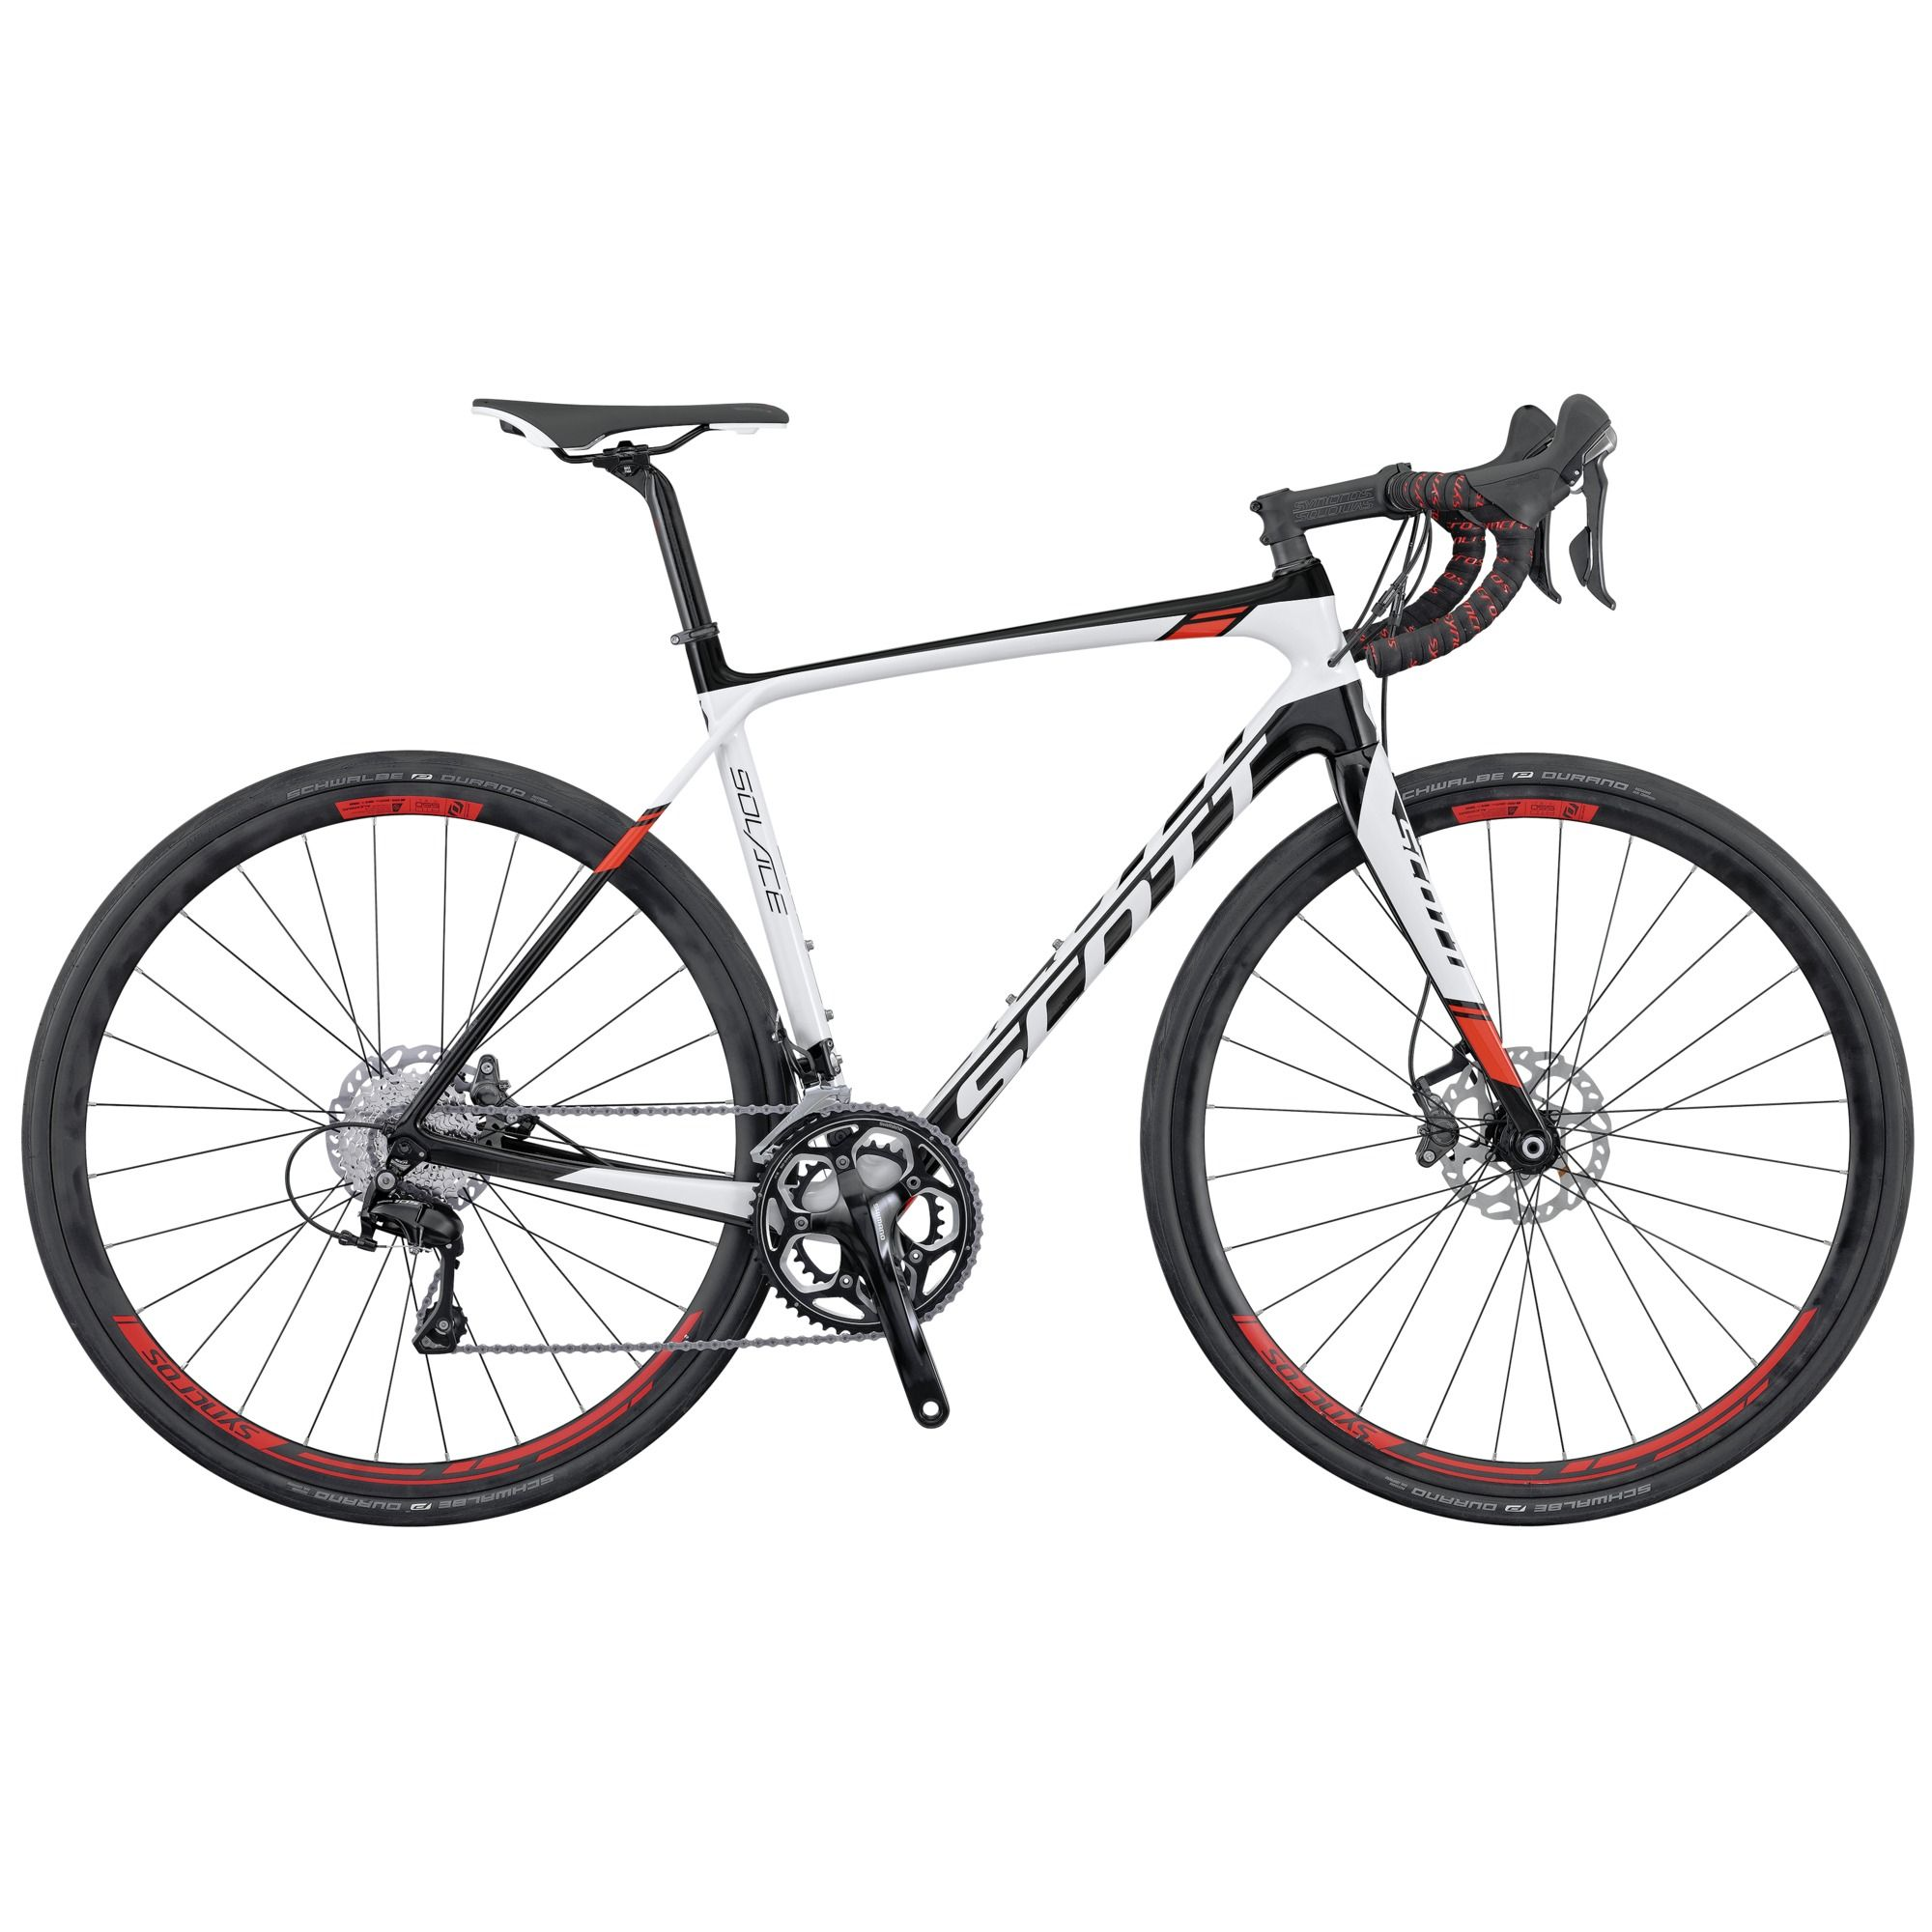 The Best Road Bike Reviews Of 2016 Reviews Com Want